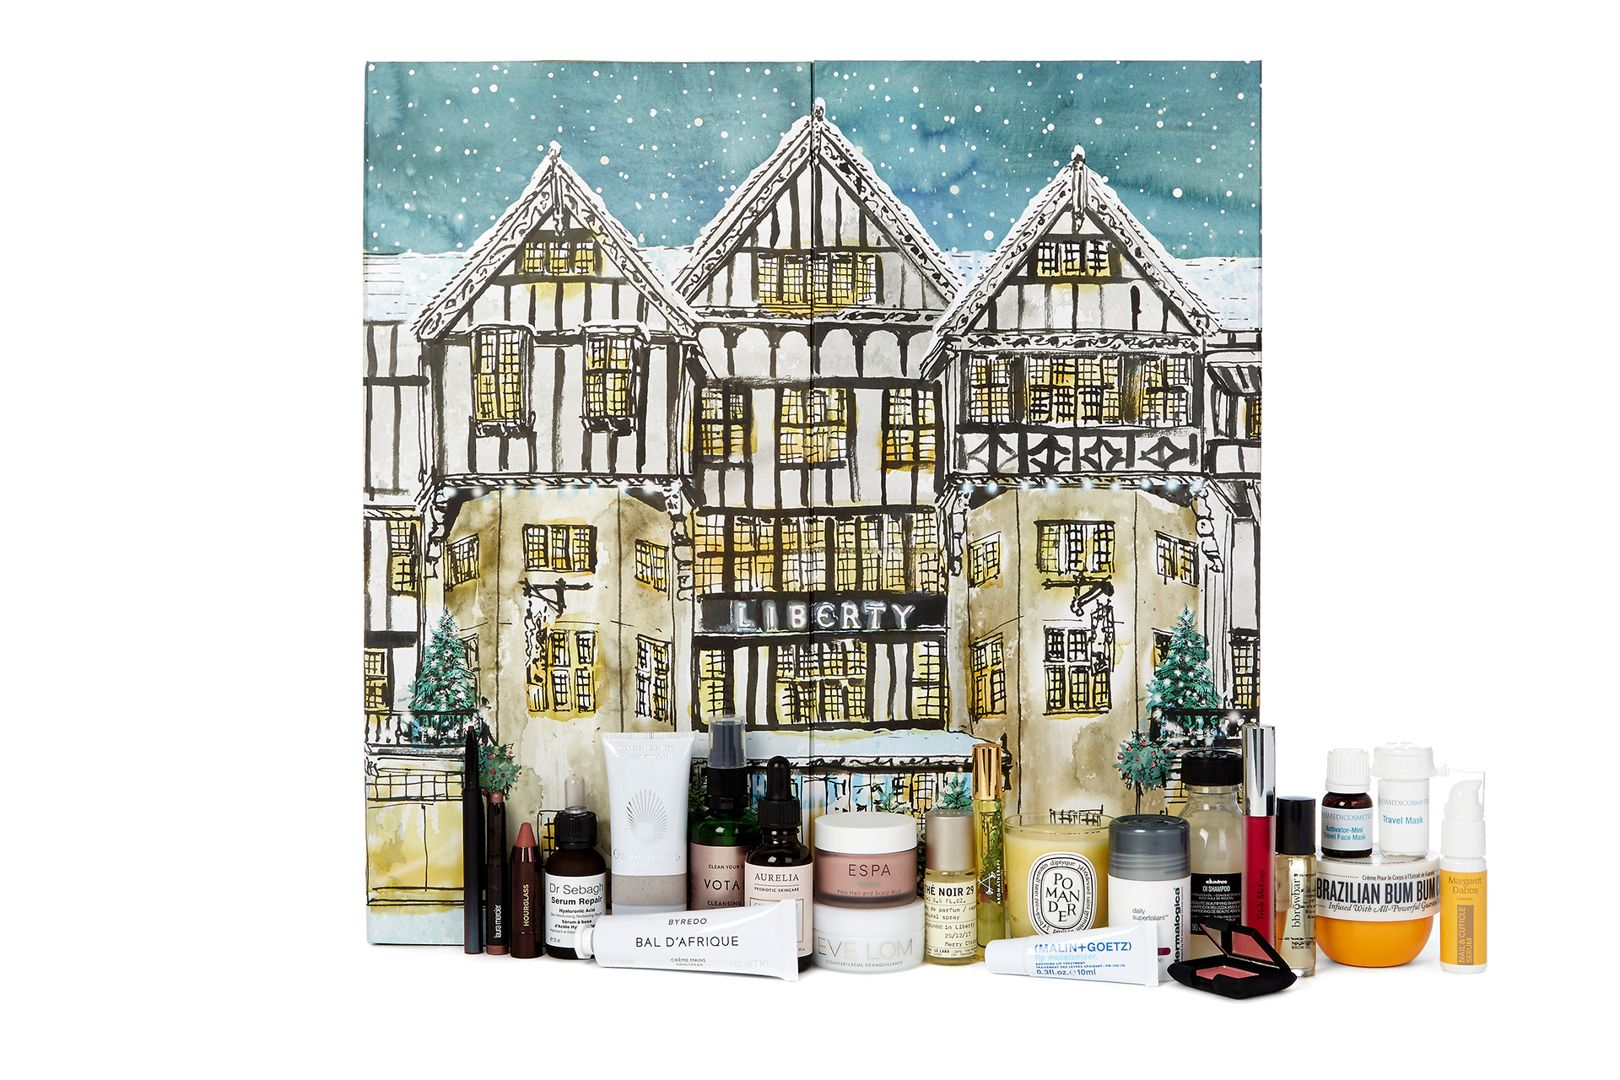 liberty-london-advent-calendar-2017